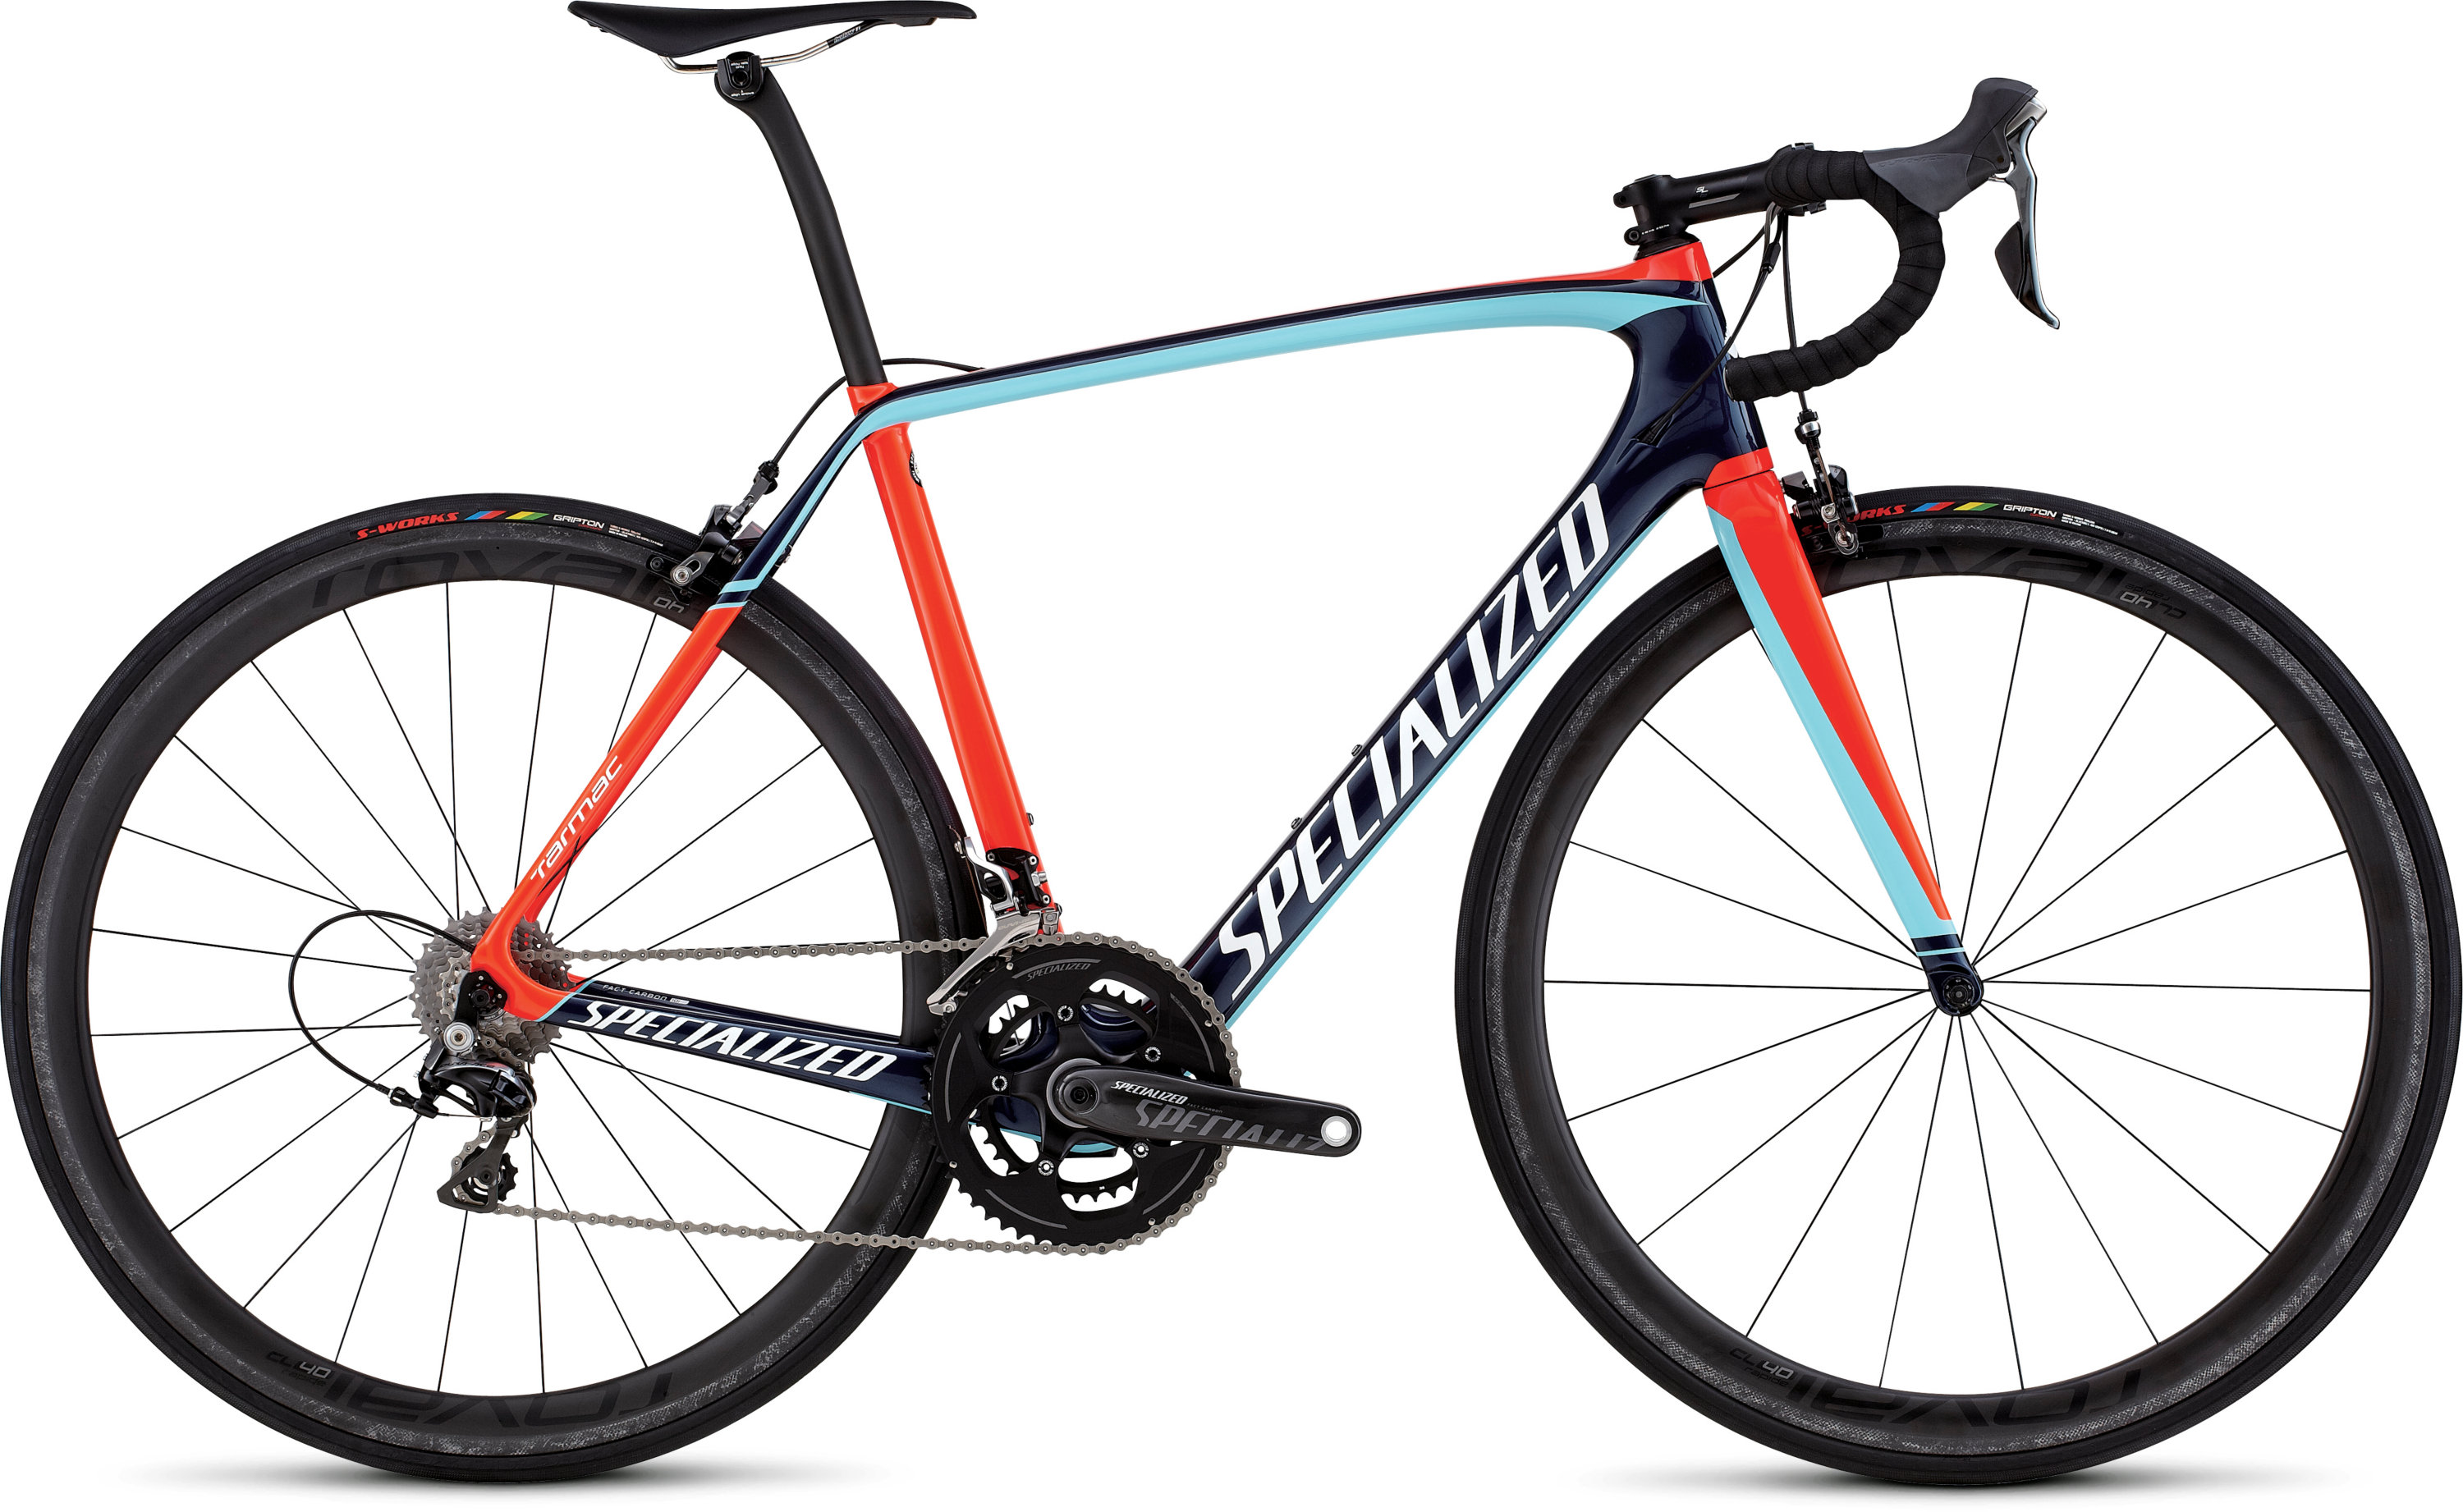 SPECIALIZED TARMAC PRO RACE NVY/RKTRED/LTBLU 49 - Bikedreams & Dustbikes